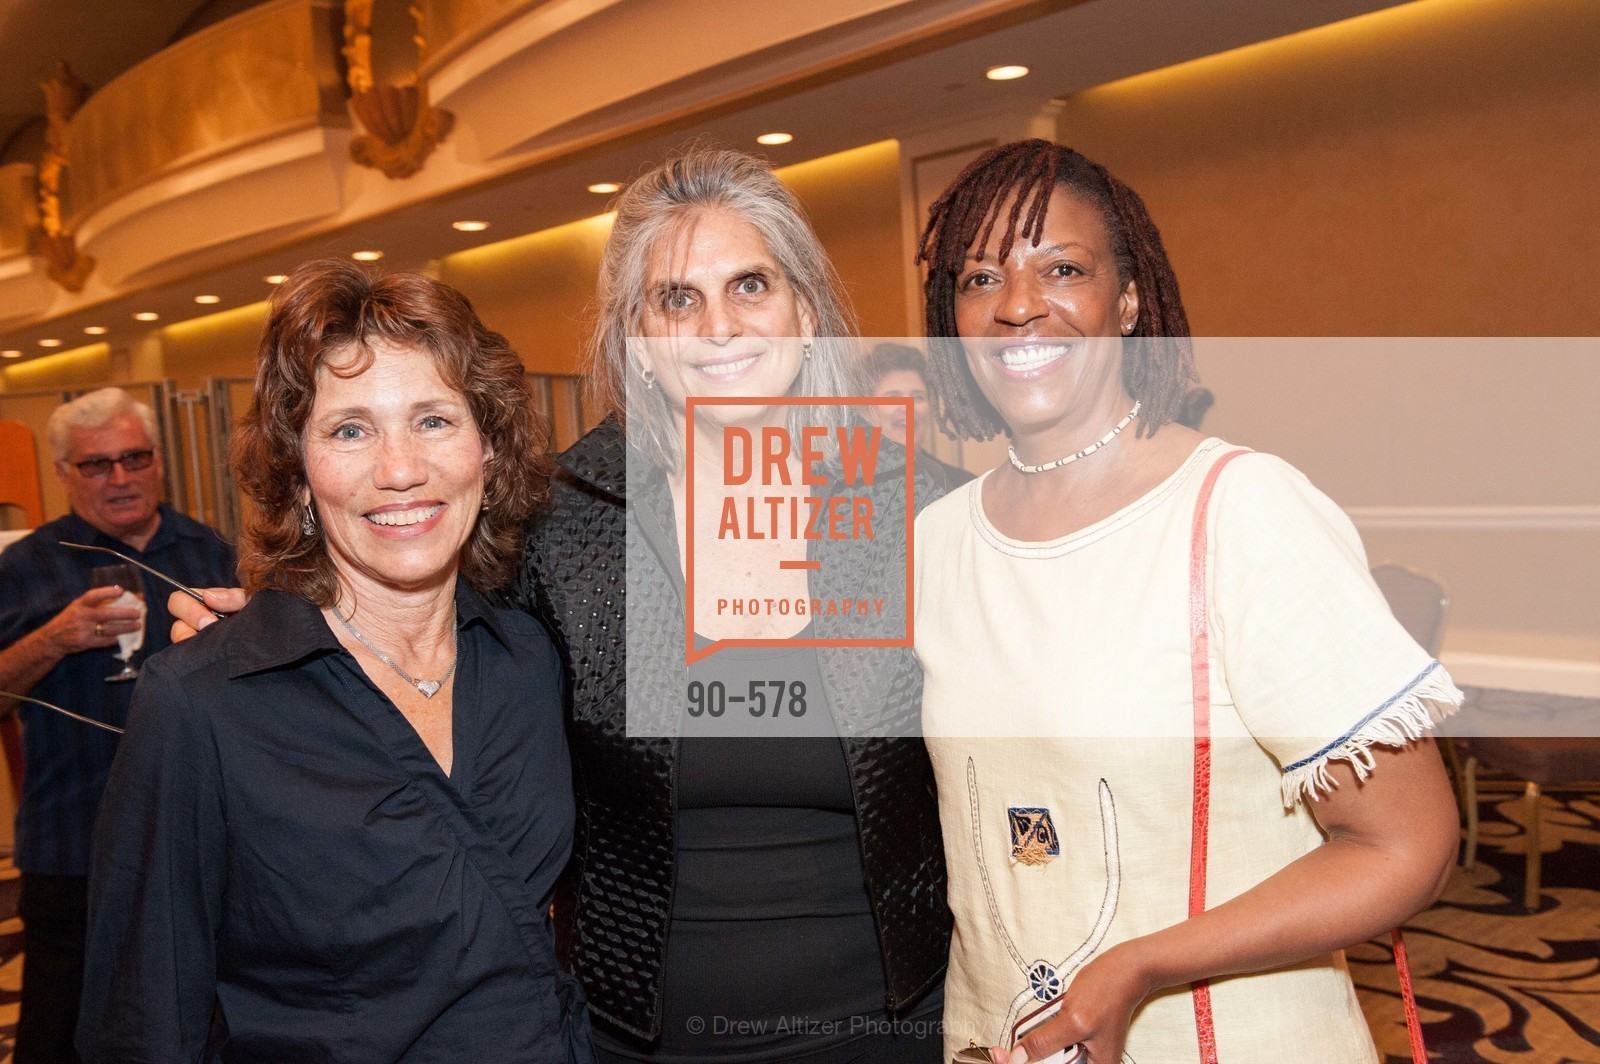 Miguelina Perez, Roberta Goodman, Jolly Bugari, HOMELESS PRENATAL Annual Luncheon 2014, US, September 30th, 2014,Drew Altizer, Drew Altizer Photography, full-service agency, private events, San Francisco photographer, photographer california